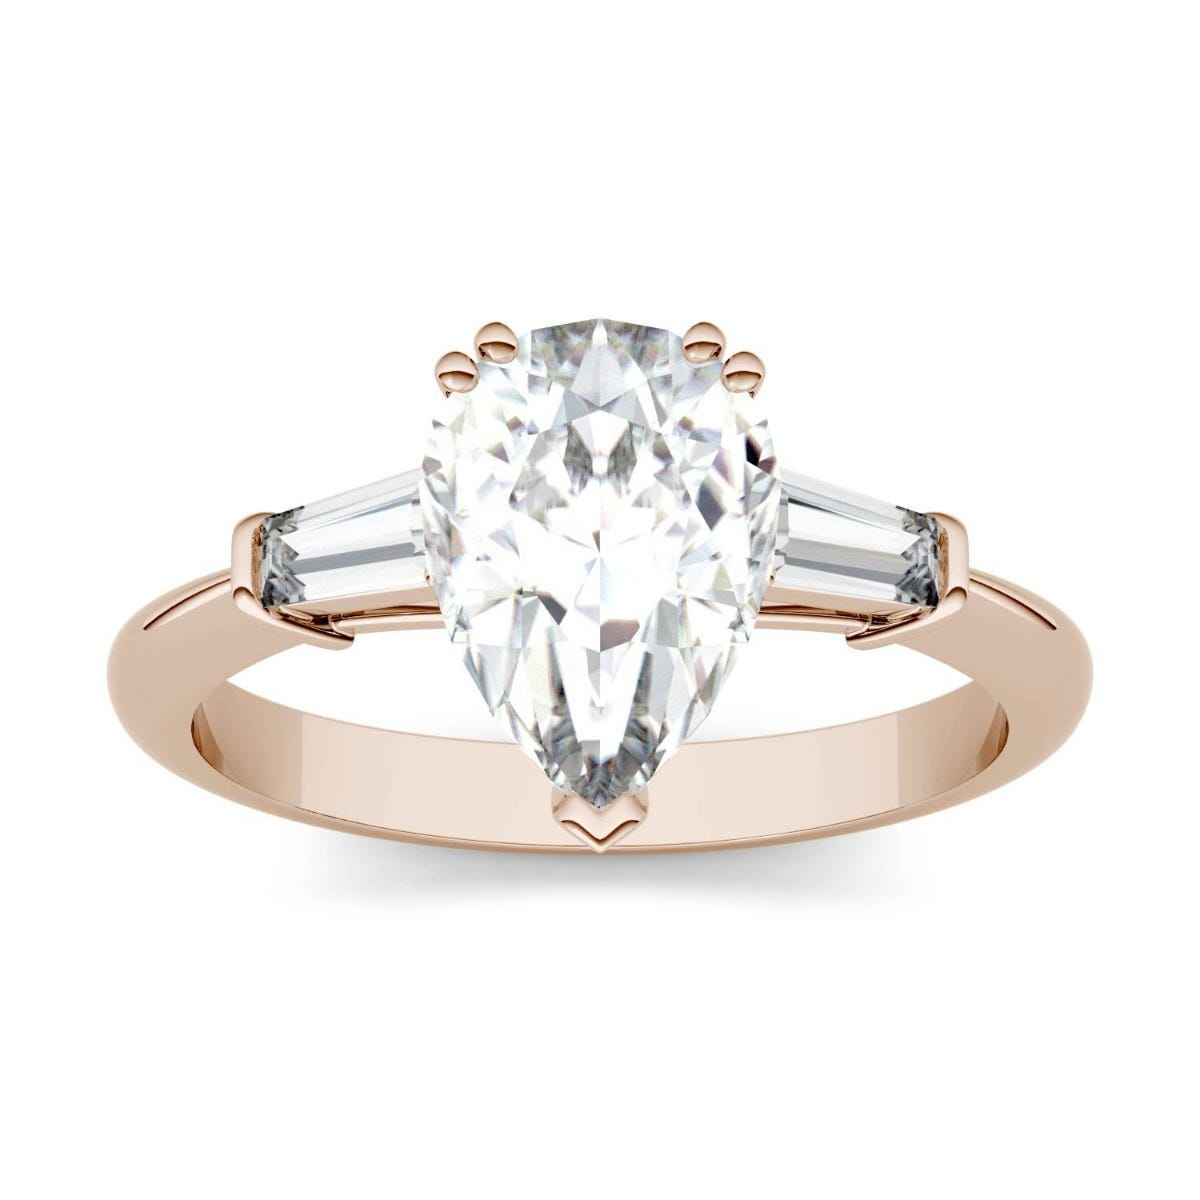 Forever One Pear Colorless Moissanite Three Stone Engagement Ring in 14K Rose Gold